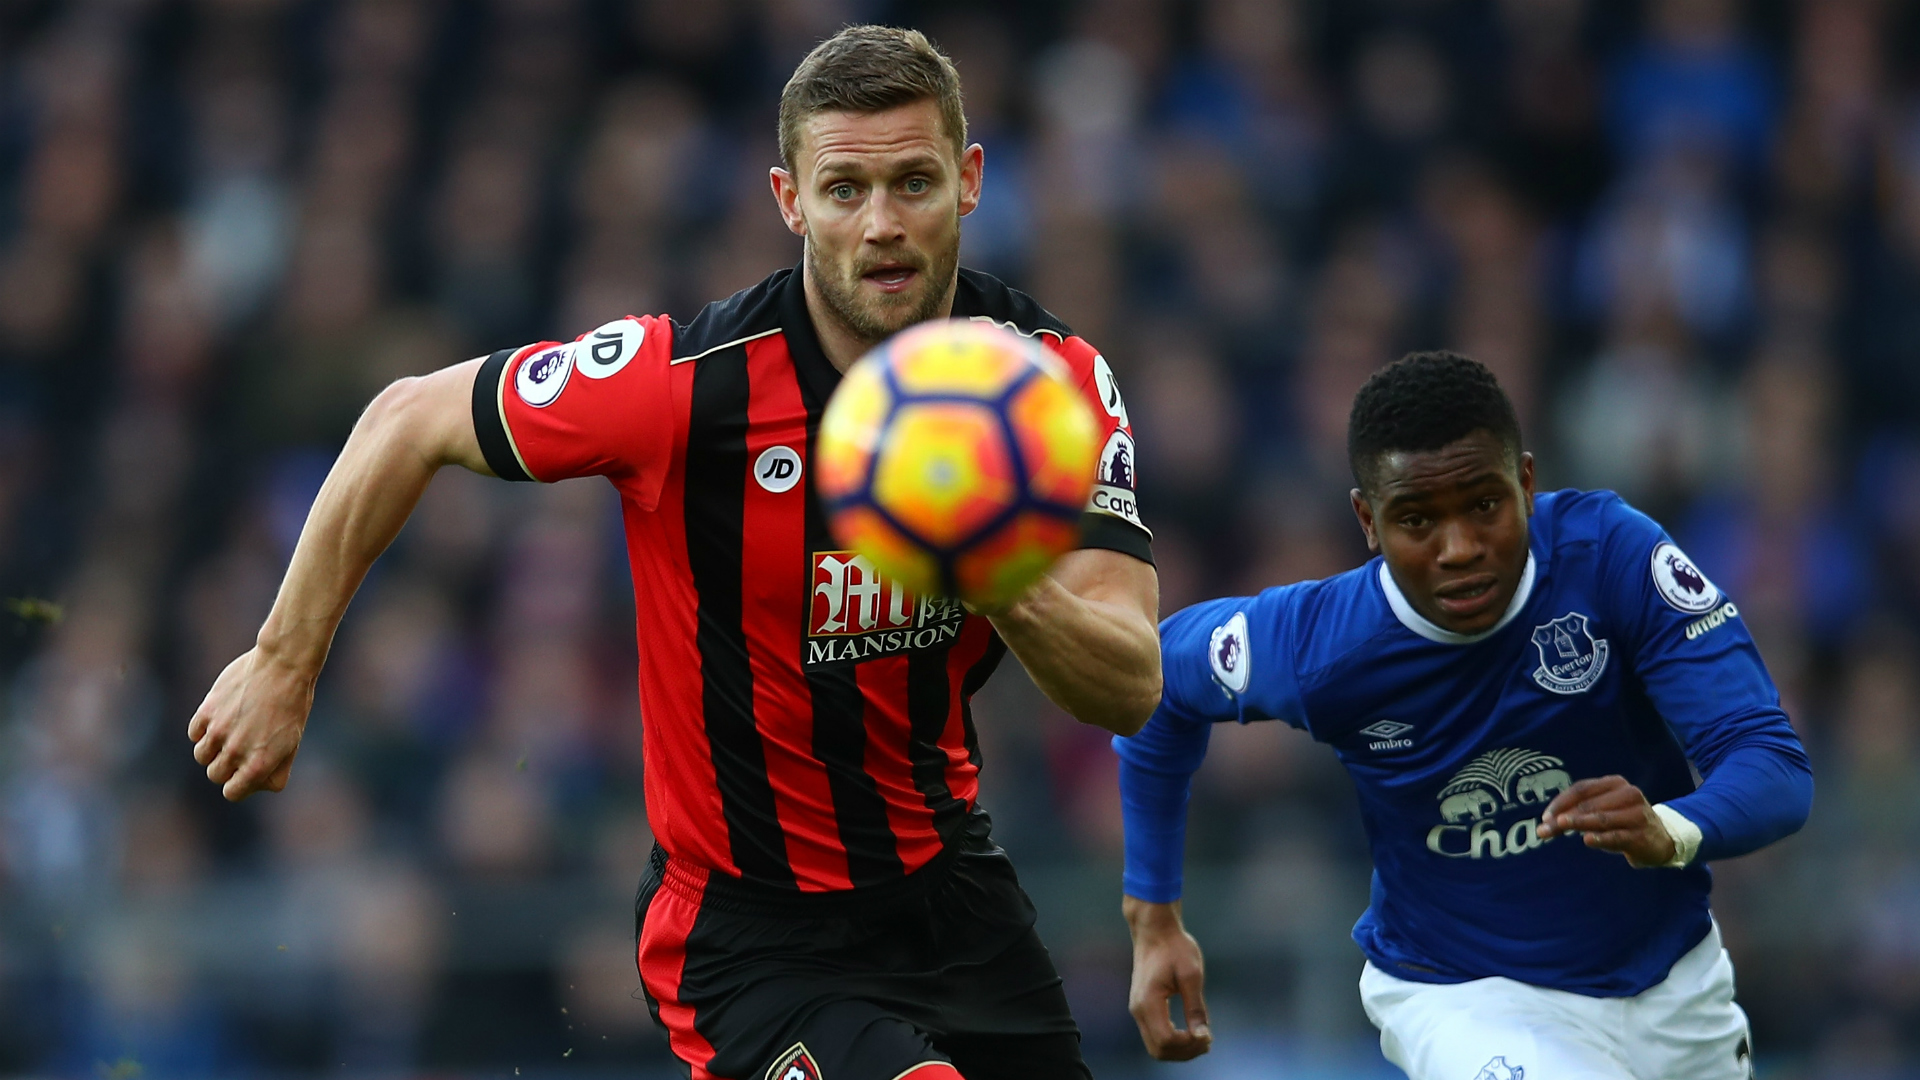 Bournemouth boss Howe won't blame Arter after spotkick howler